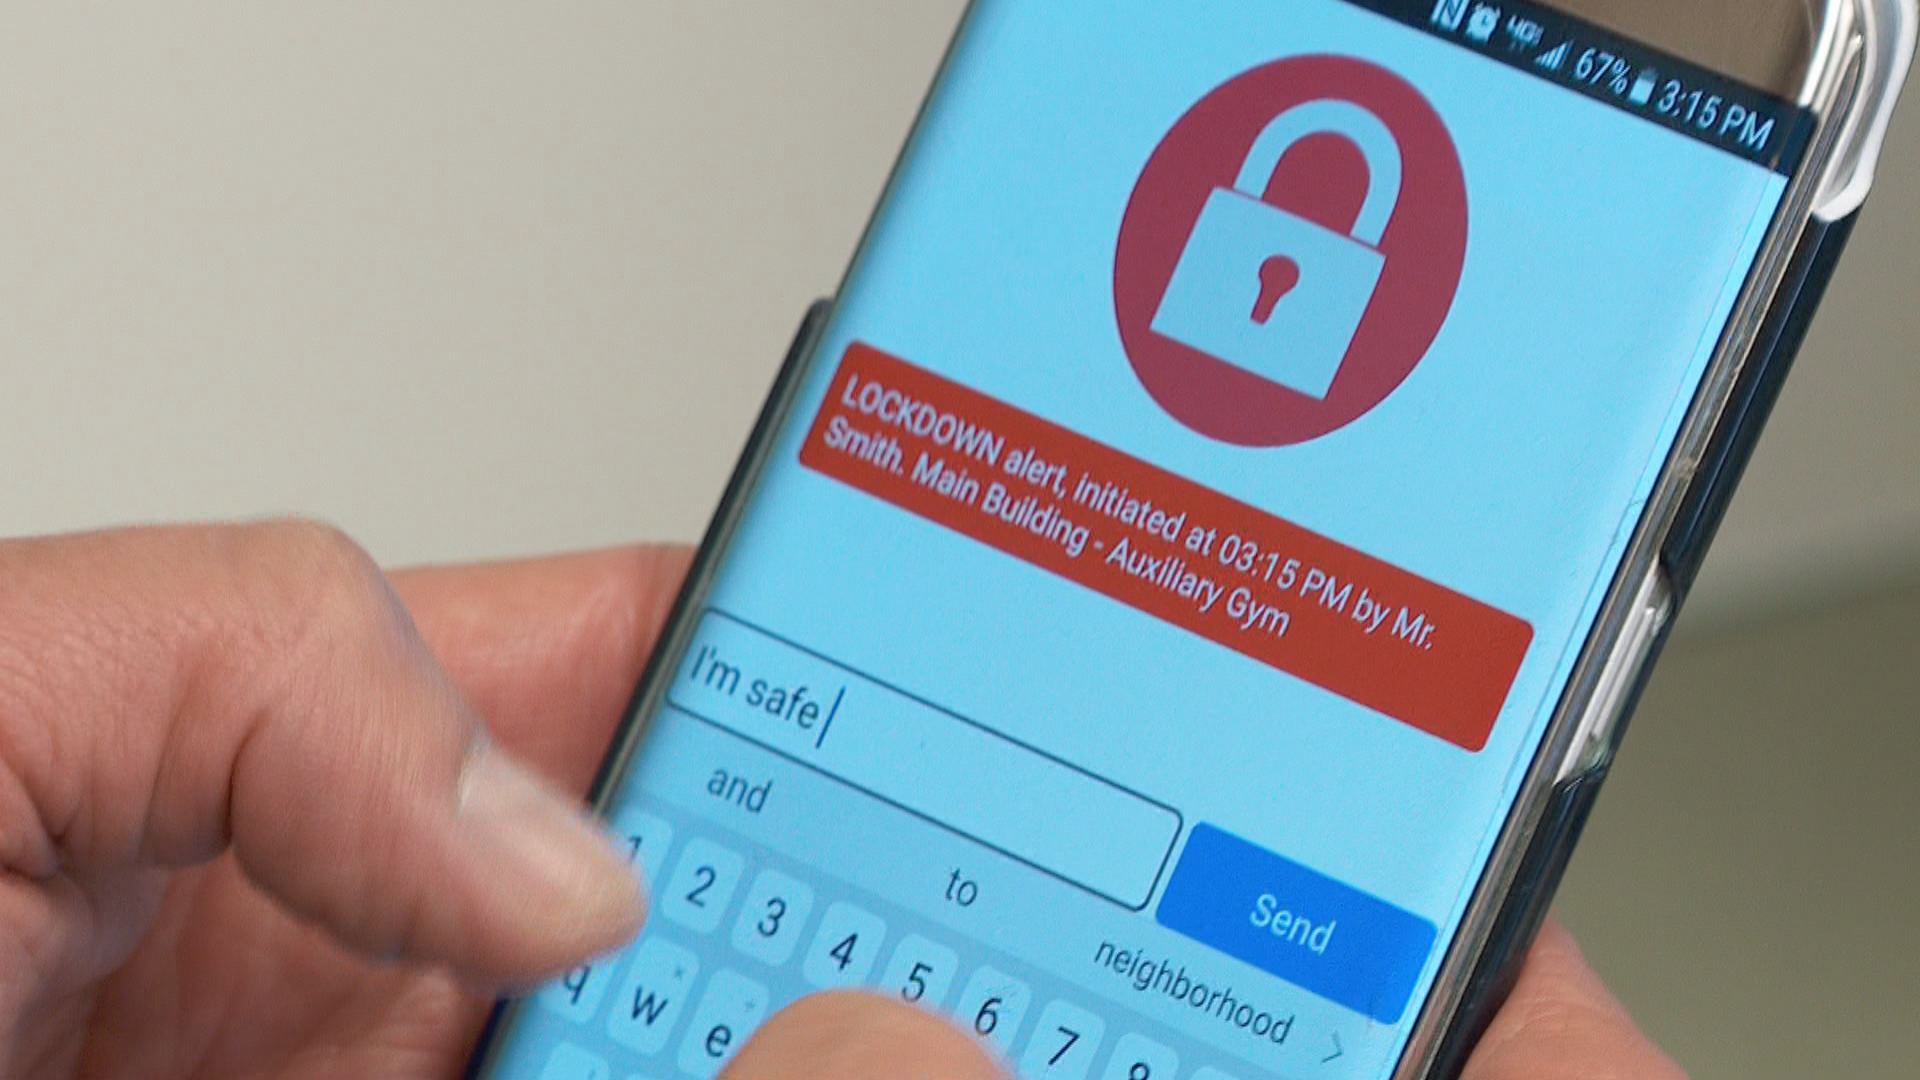 The SafeUT app, established in 2015, has seen record usage this year. (Photo: KUTV)<p></p>